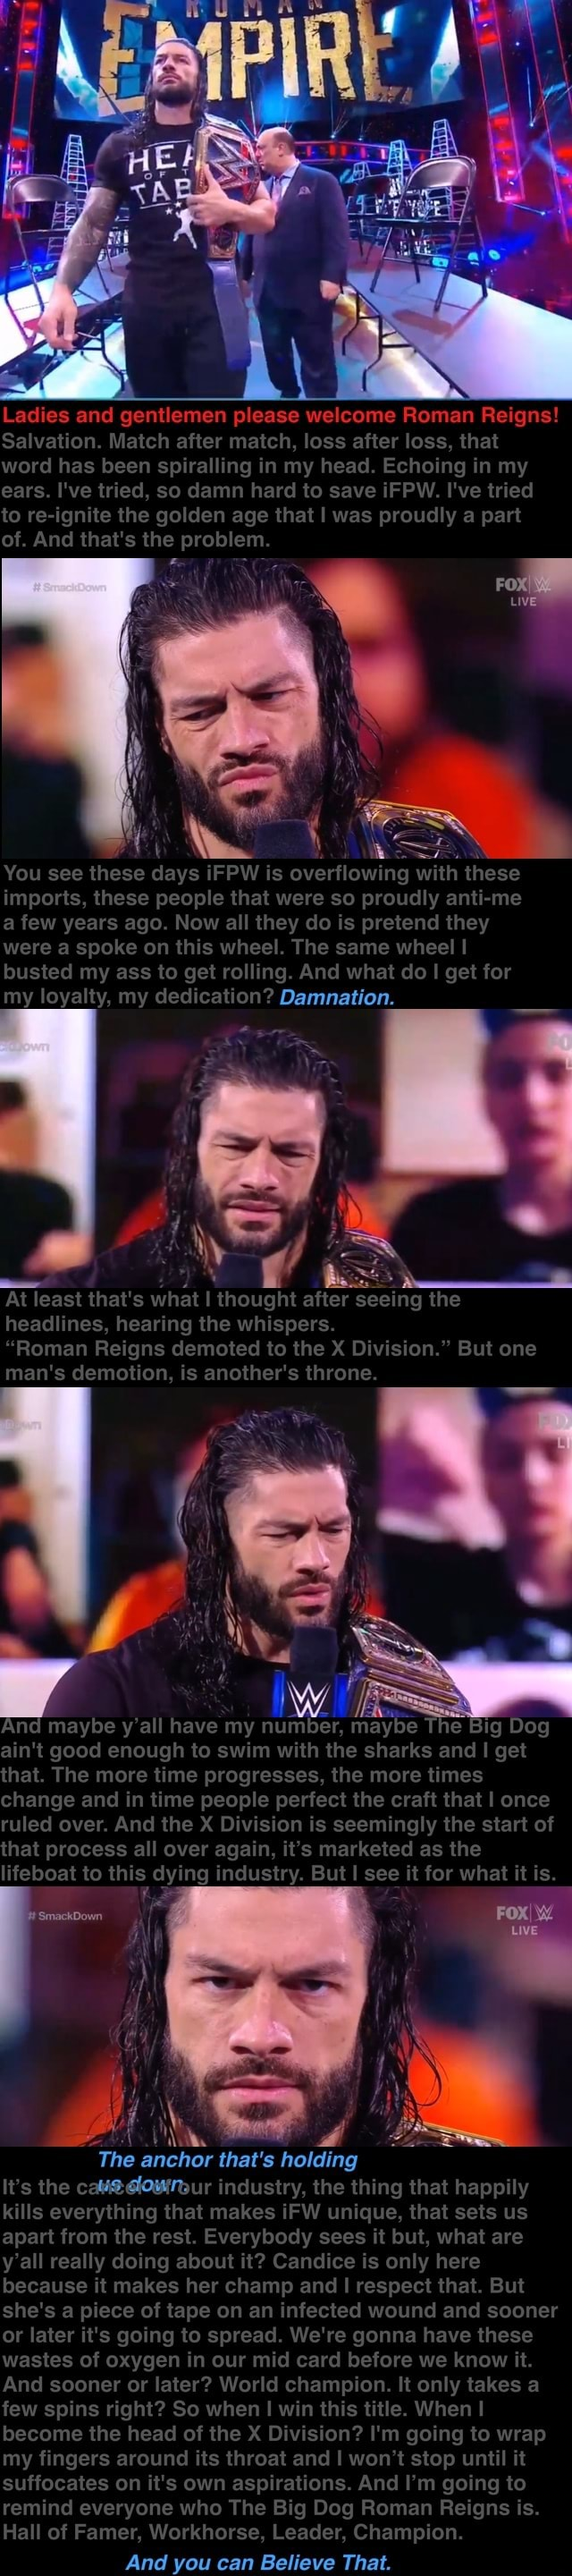 Ladies and gentlemen please welcome Roman Reigns Salvation. Match after match, loss after loss, that word has been spiralling in my head. Echoing in my ears. I've tried, so damn hard to save iFPW. I've tried to re ignite the golden age that I was proudly part of. And that's the problem. FOX You see these days iFPW is overtlowing with these imports, these people that were so proudly anti me a few years ago. Now all they do is pretend they were a spoke on this wheel. The same wheel I busted my ass to get rolling. And what do I get for my loyalty, my dedication Damnation. At least that's what I thought after seeing the headlines, hearing the whispers. Roman Reigns demoted to the X Division. But one man's demotion, is another's throne. nd maybe y'all have my SmackDown ain't good enough to swim